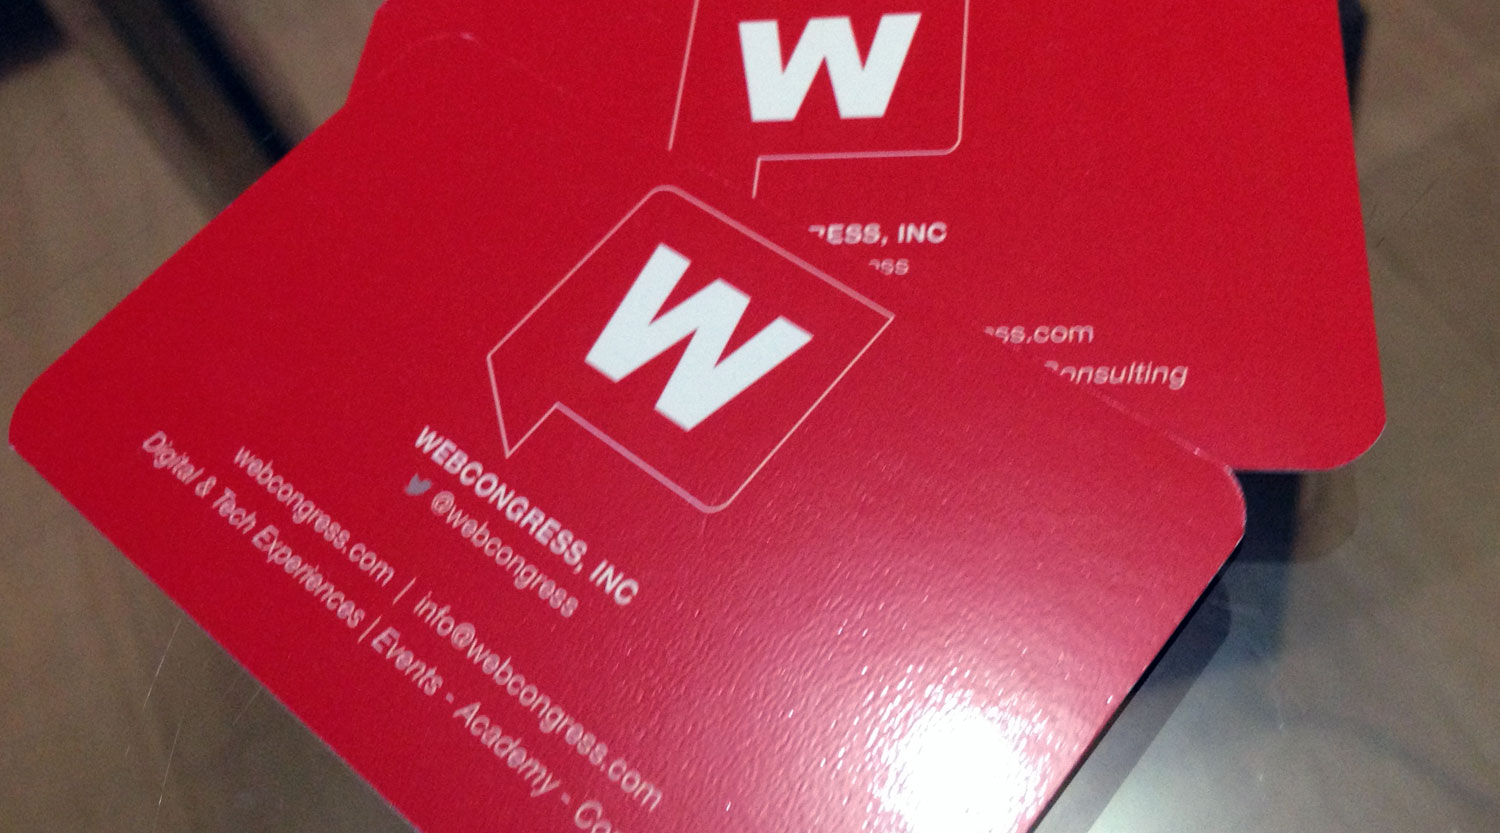 webcongress lima 2014 rojo